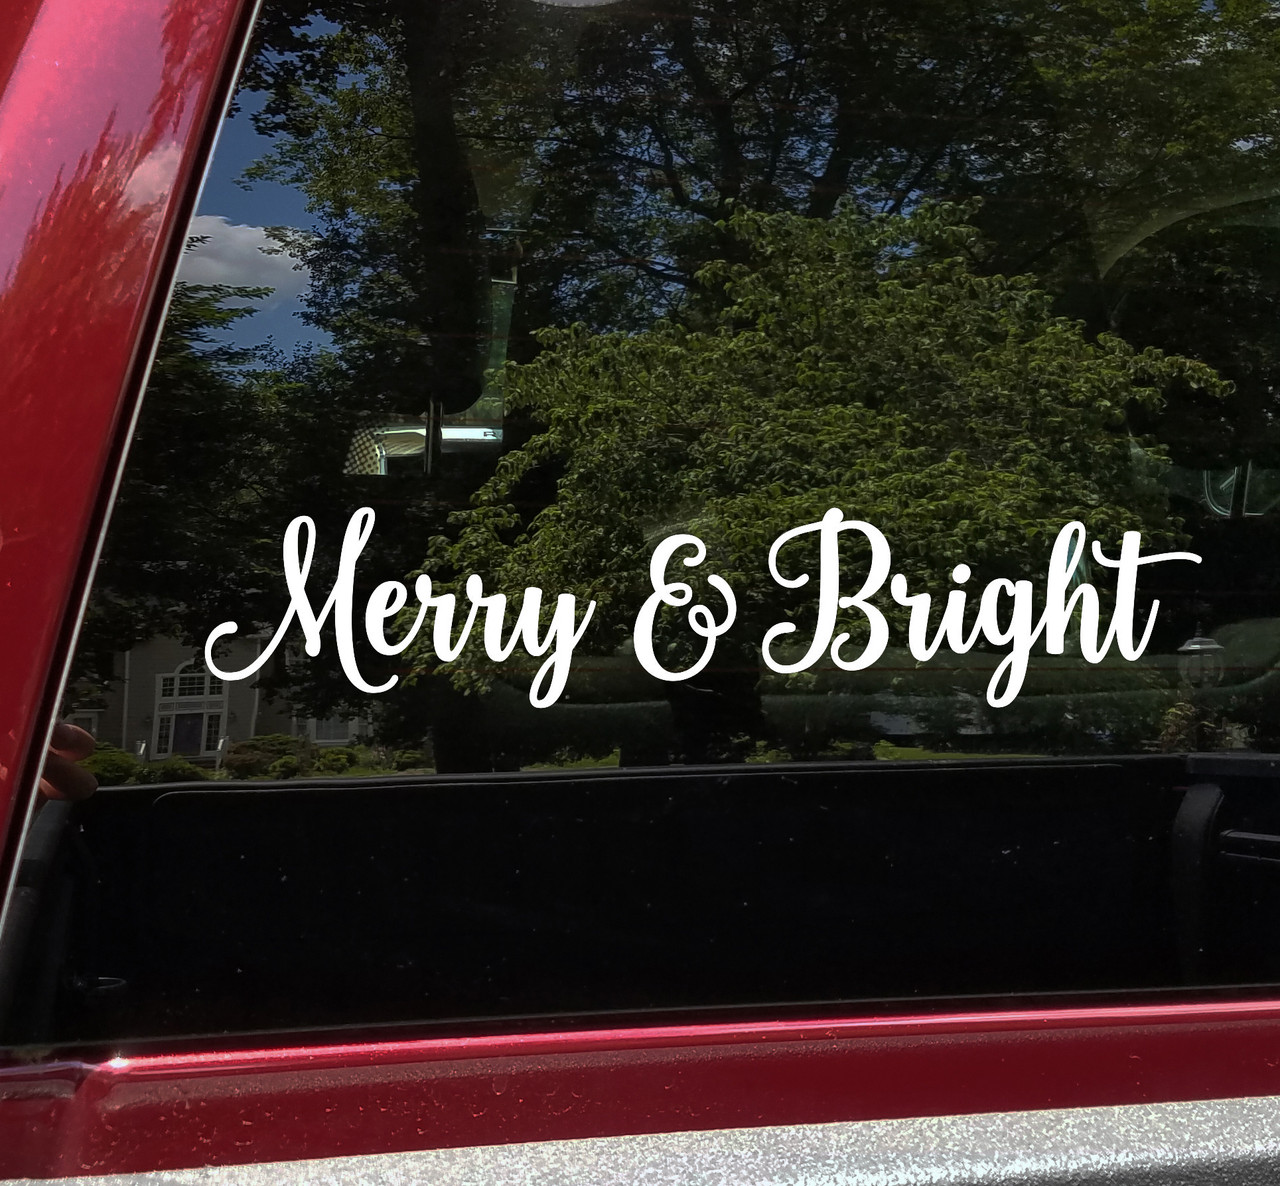 Merry & Bright Vinyl Decal V1 - Christmas Holidays Winter - Die Cut Sticker